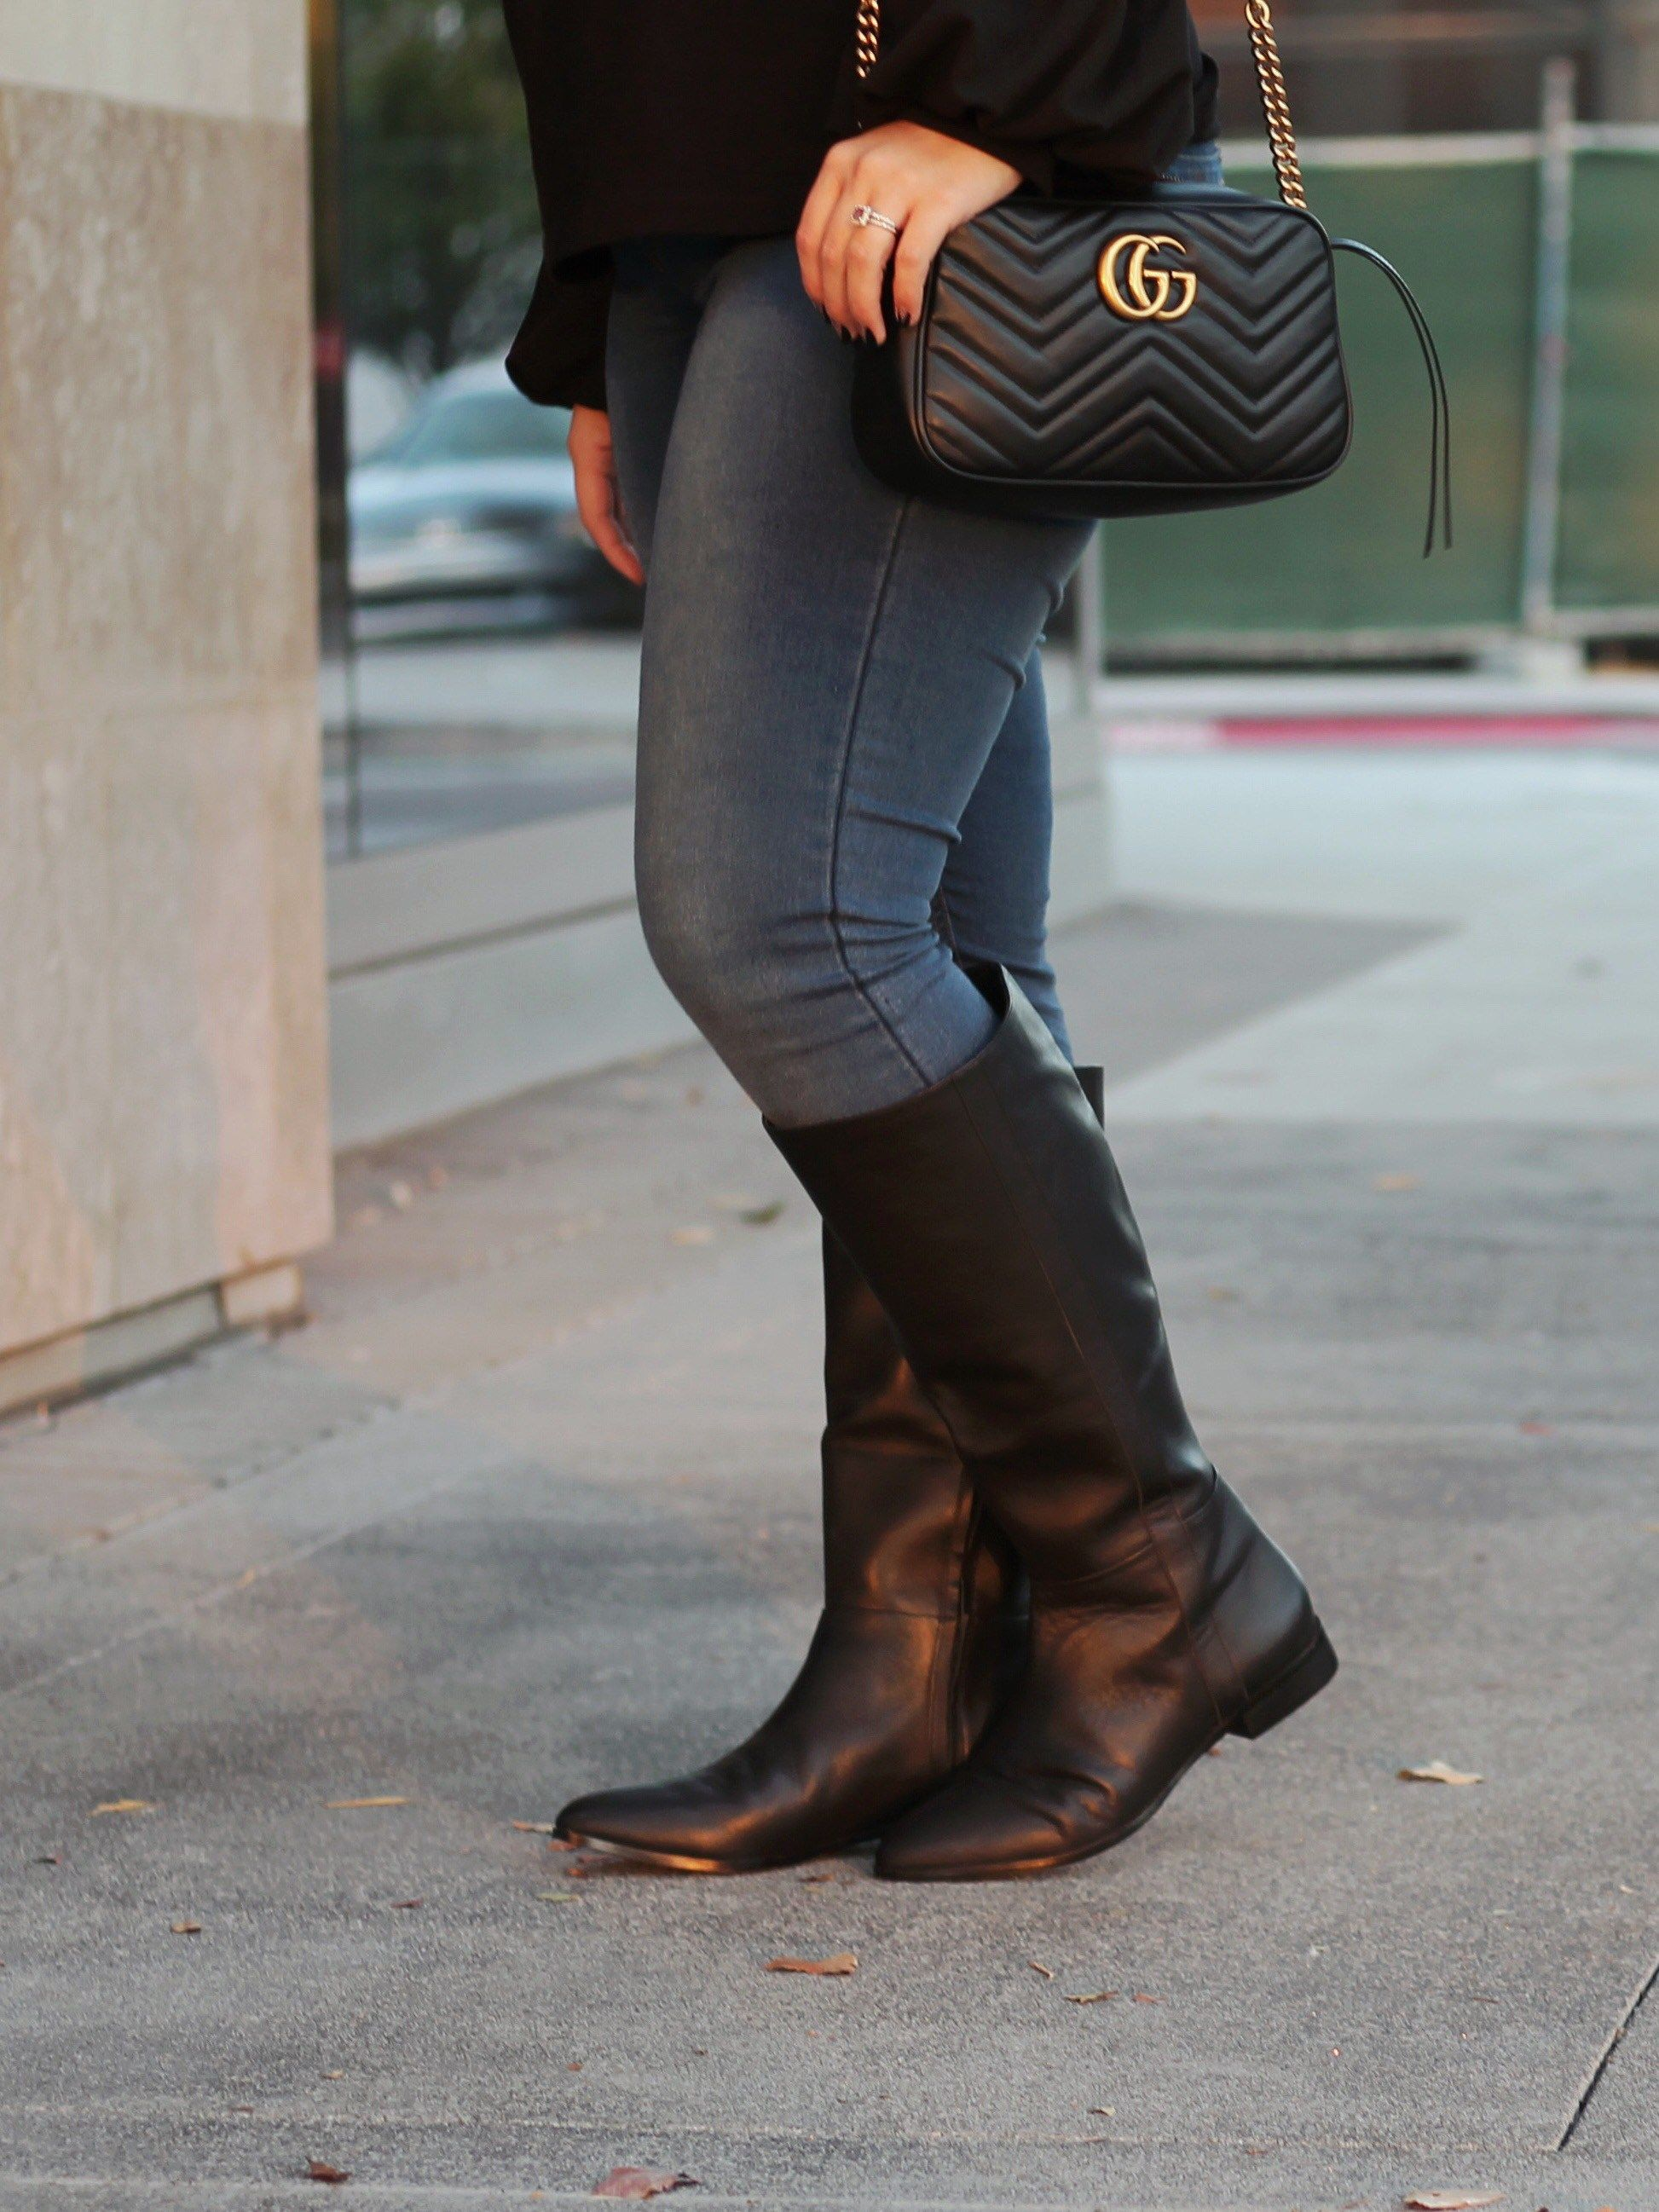 bf69081ed23 Holy Fit! Wide Calf Boots for All - Rose Gold Lining